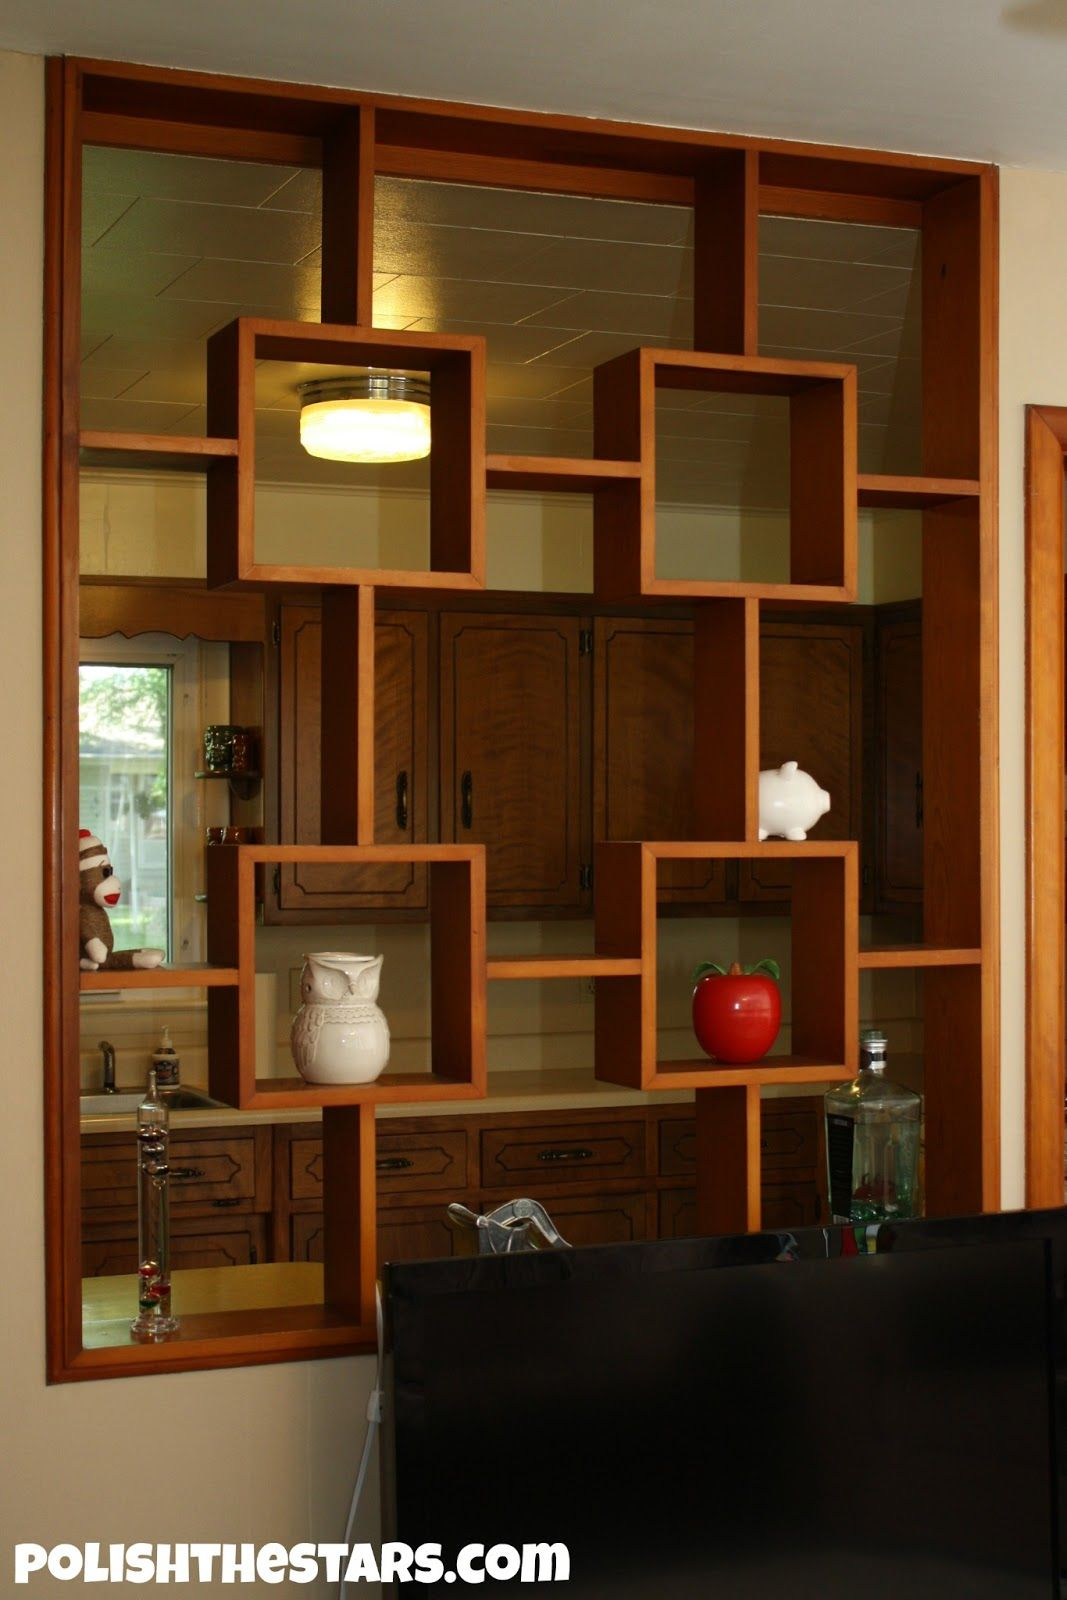 Divider Design For Small House Fascinating Half Wall Room Divider For Interior Design